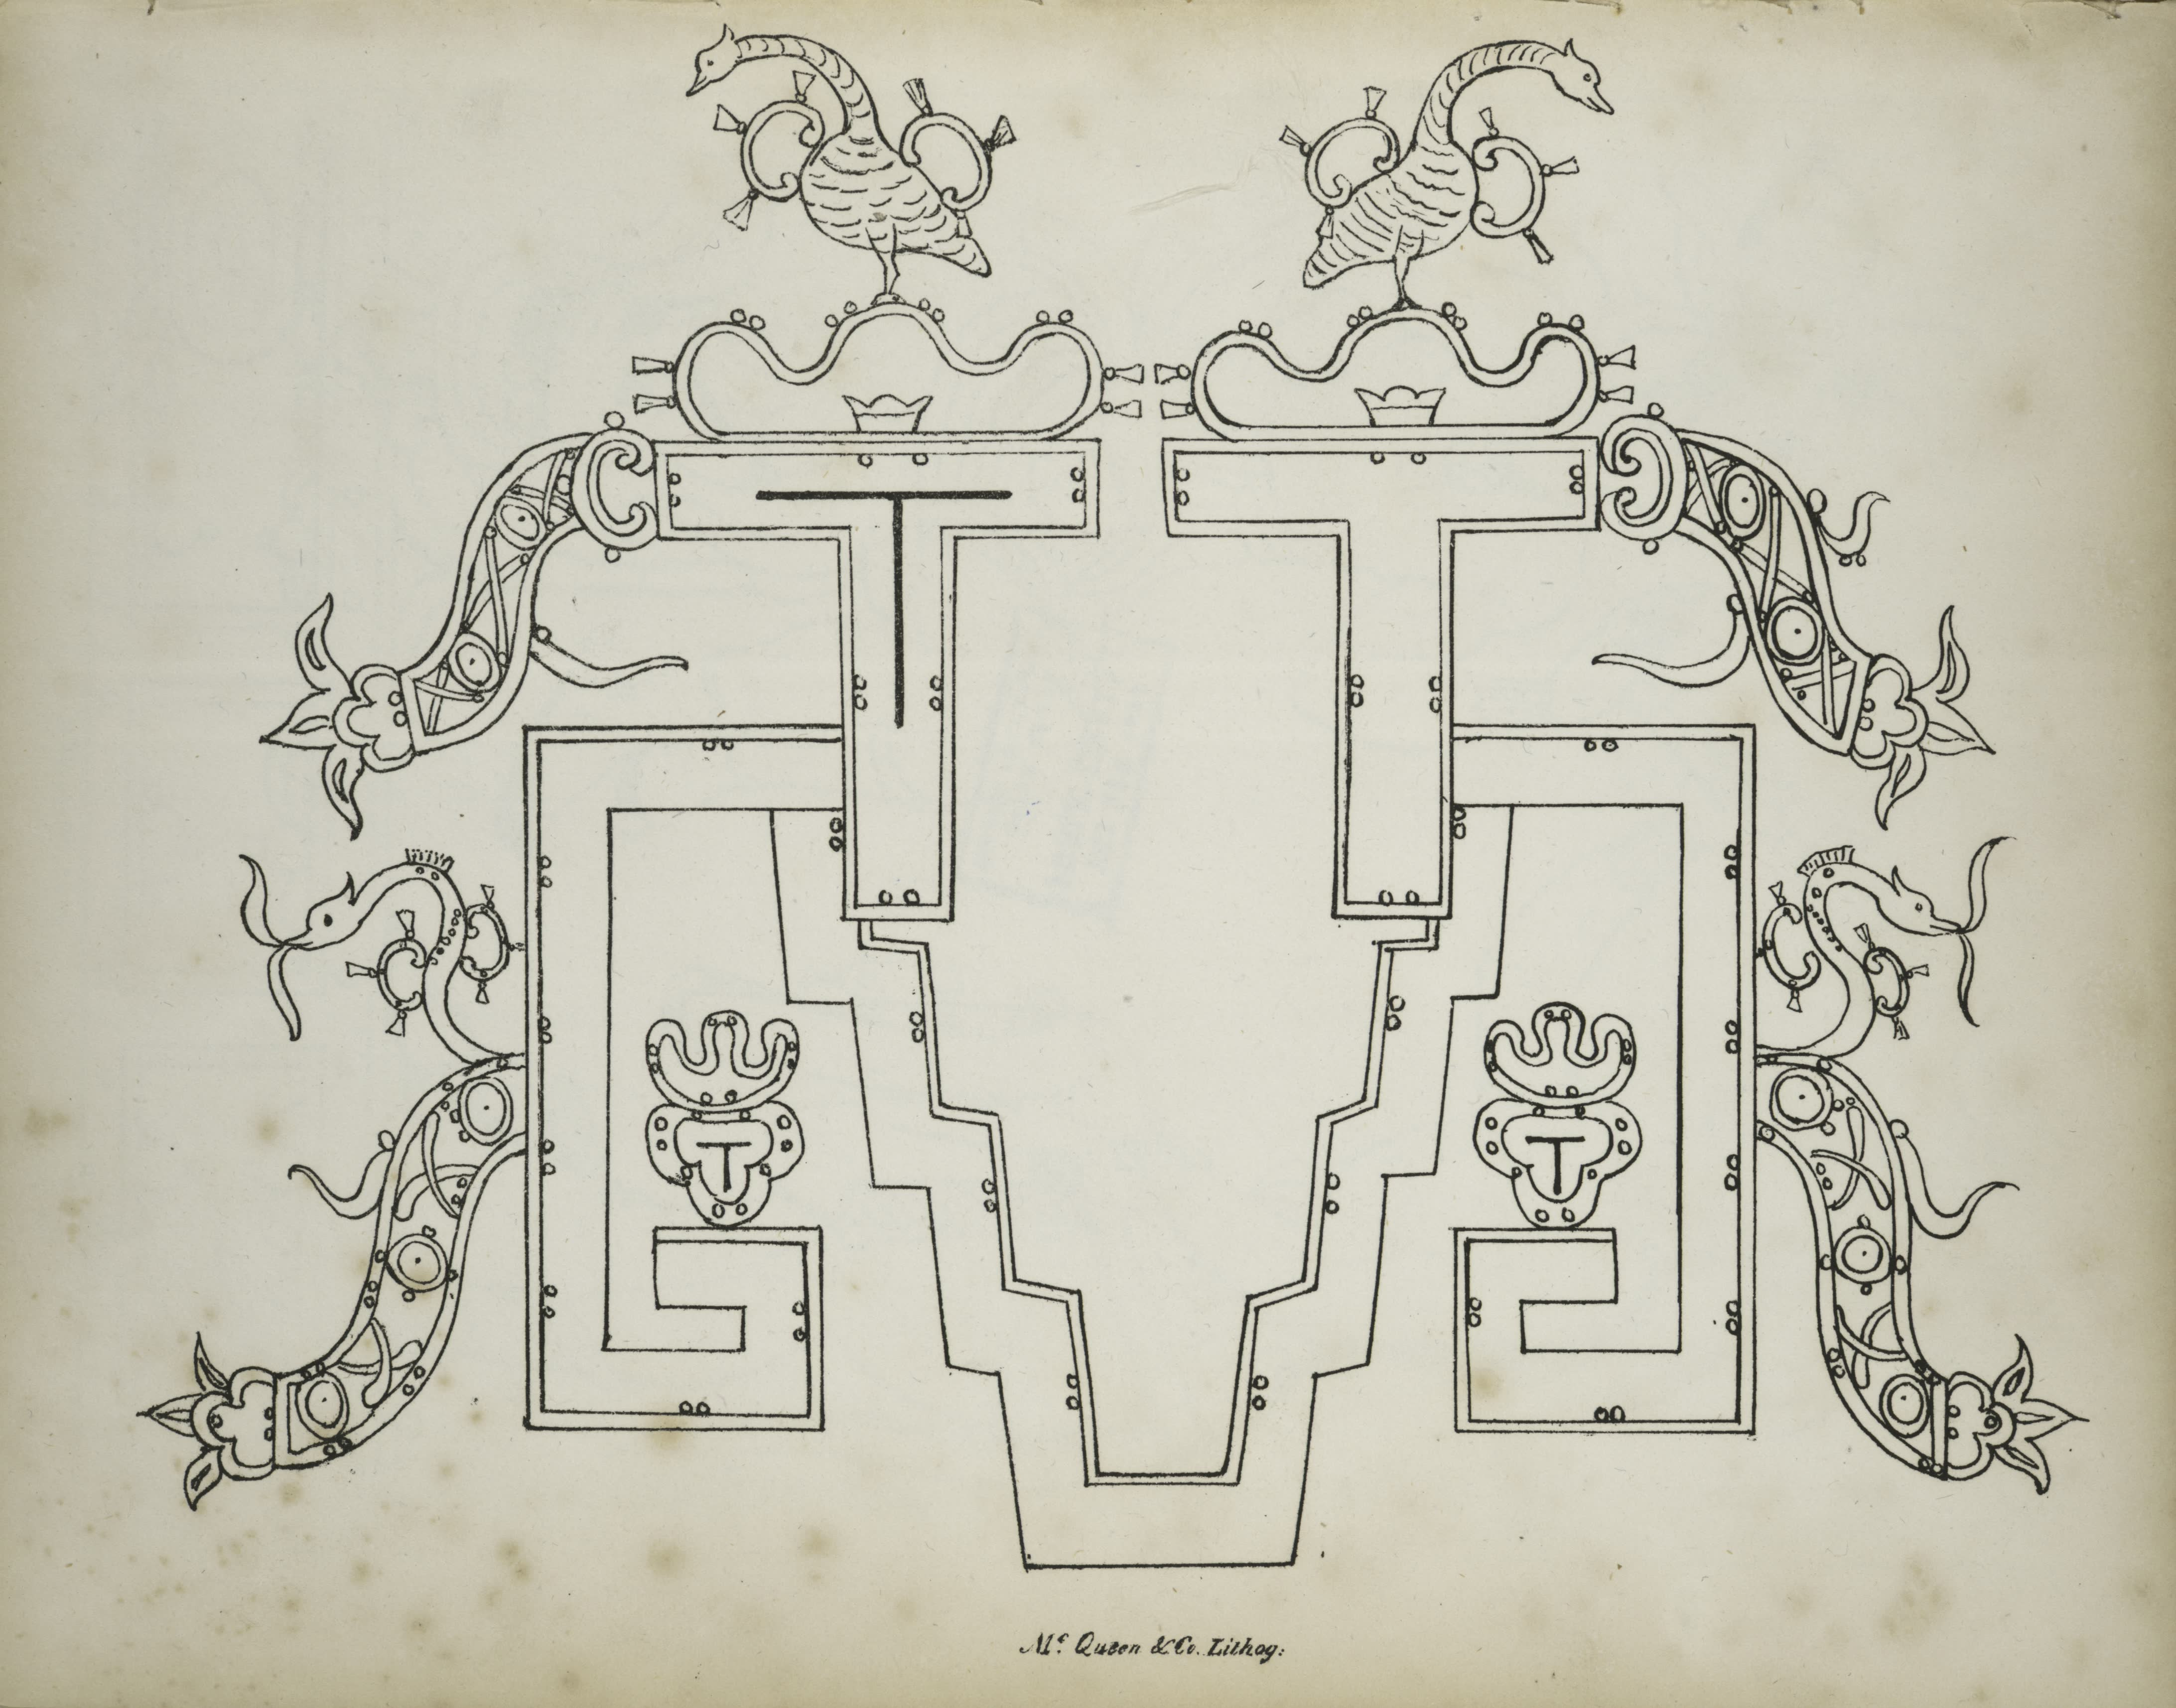 Description of the Ruins of an Ancient City - Architectural element decorated with birds and abstract designs (1822)